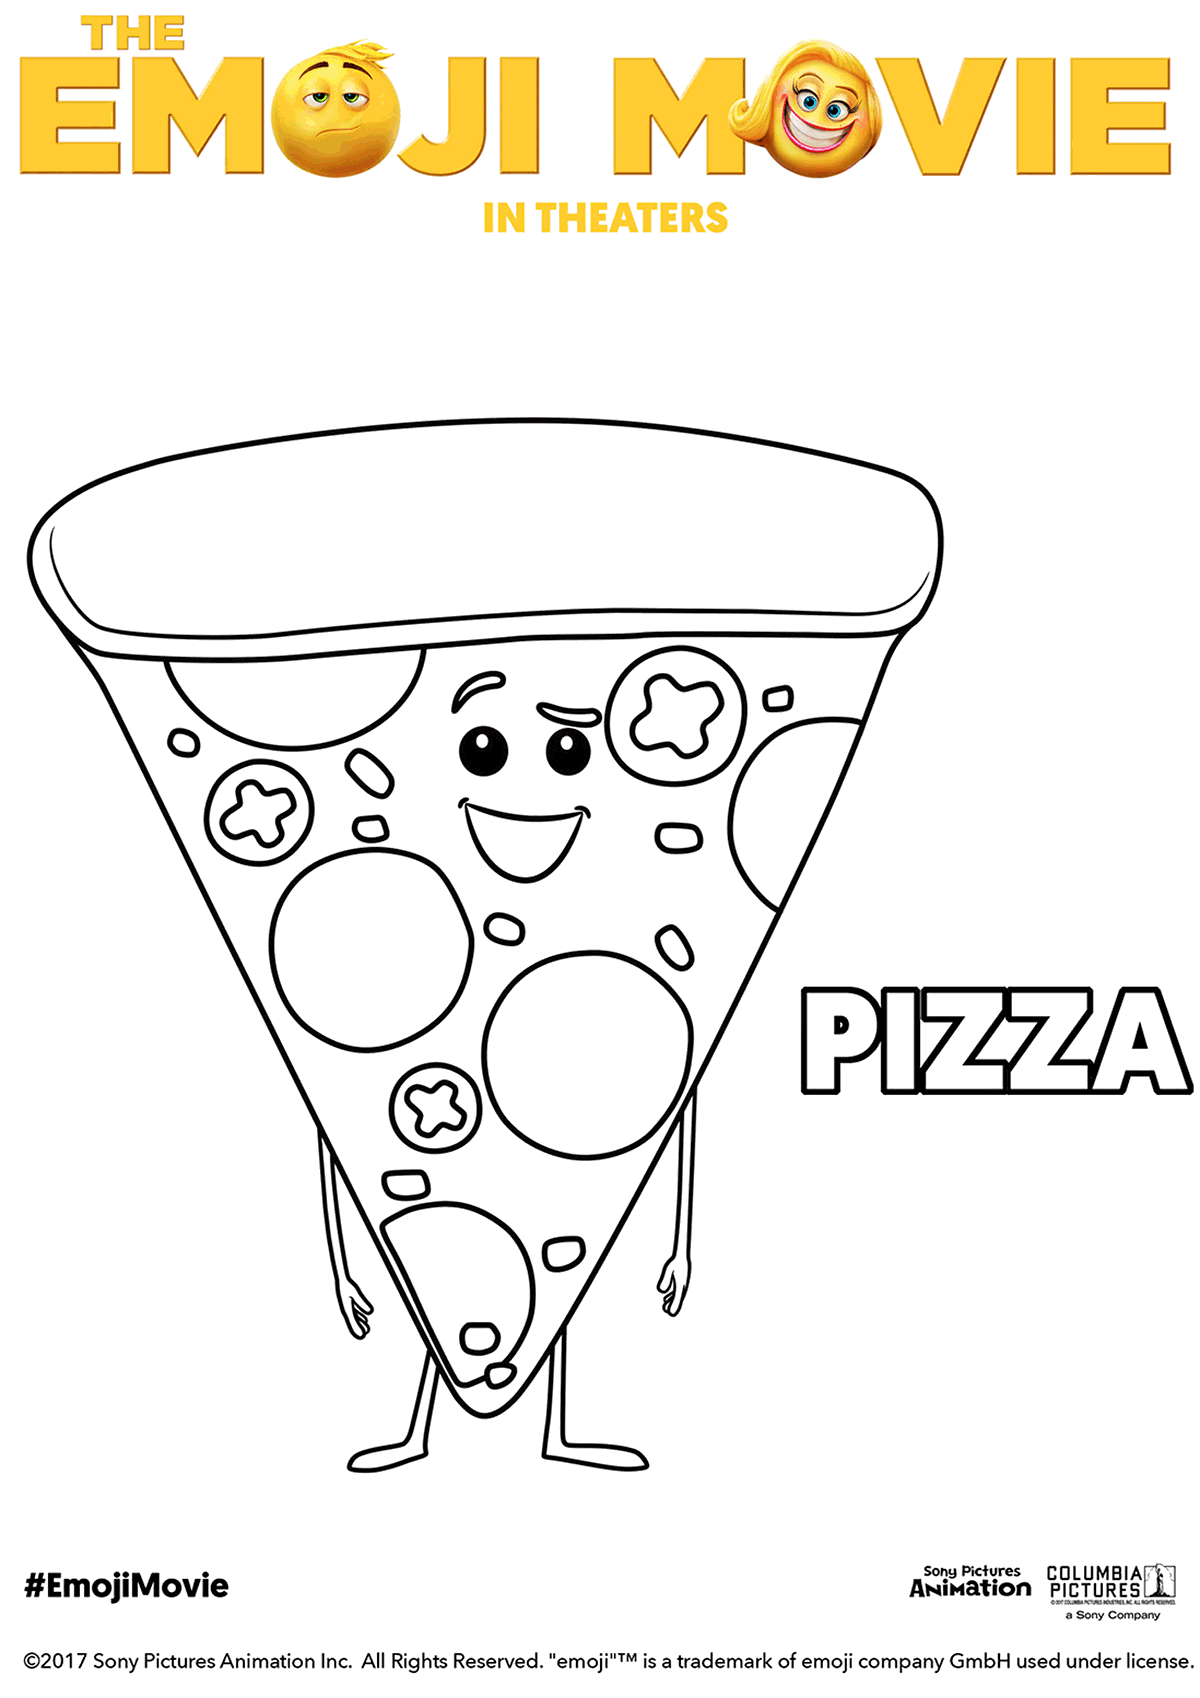 The Emoji Movie Pizza Coloring Page Emoji Movie Emoji Coloring Pages Emoji